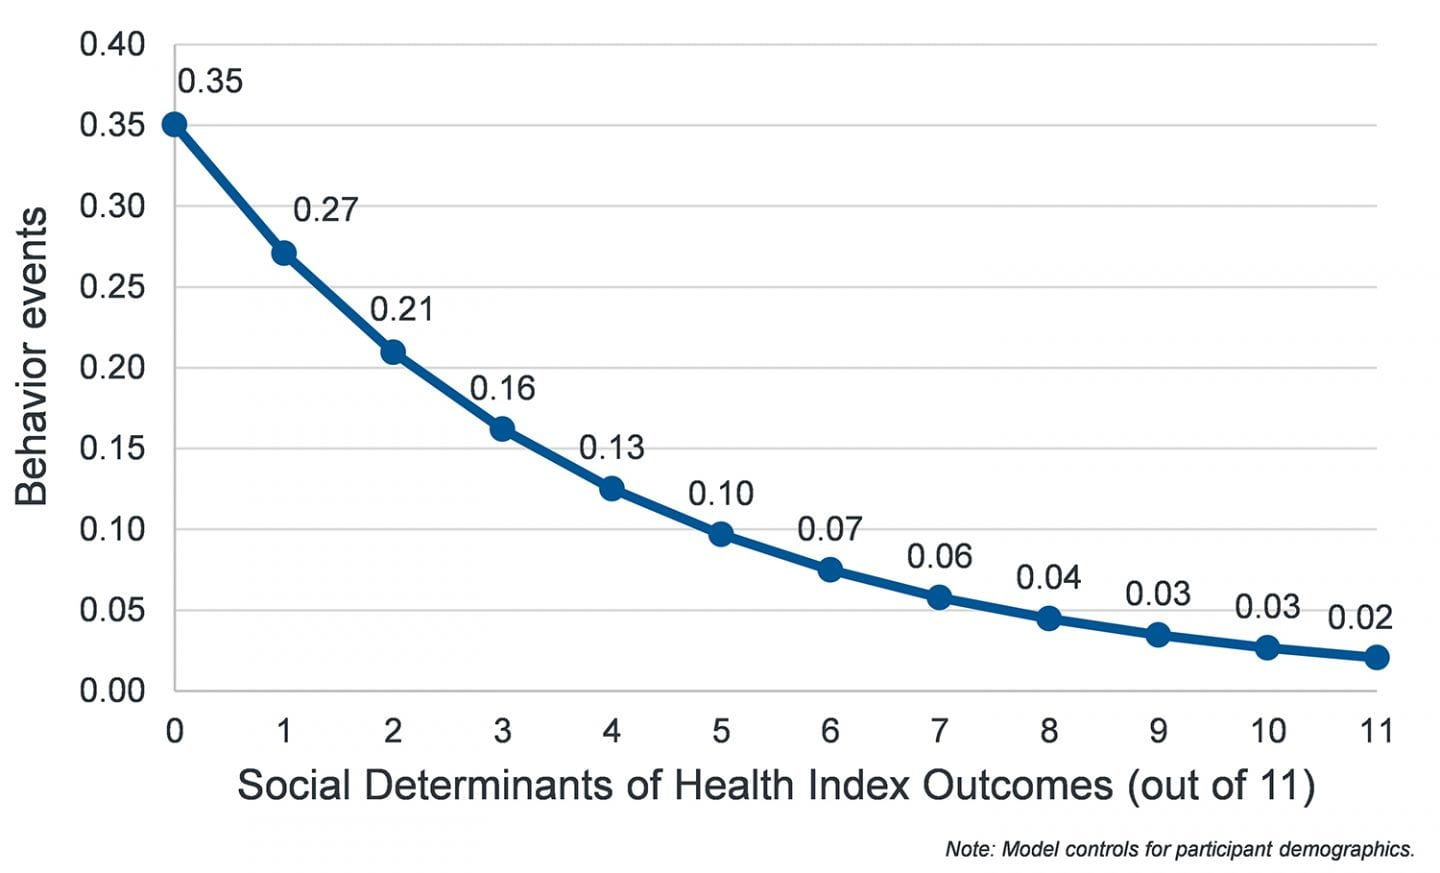 Graph shows that as social determinants of health index outcomes (out of 11) increase, the number of behavior events decreases.